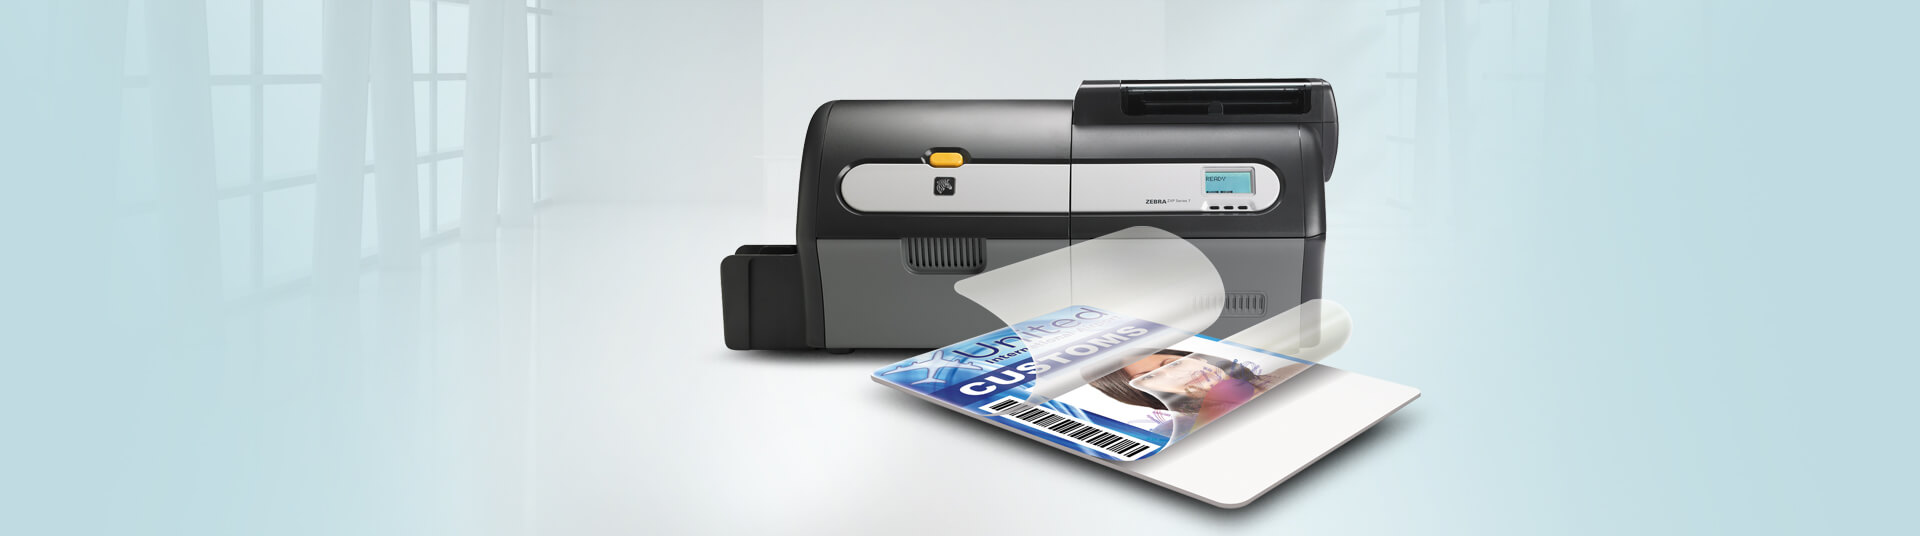 Laminate ID Card Printers